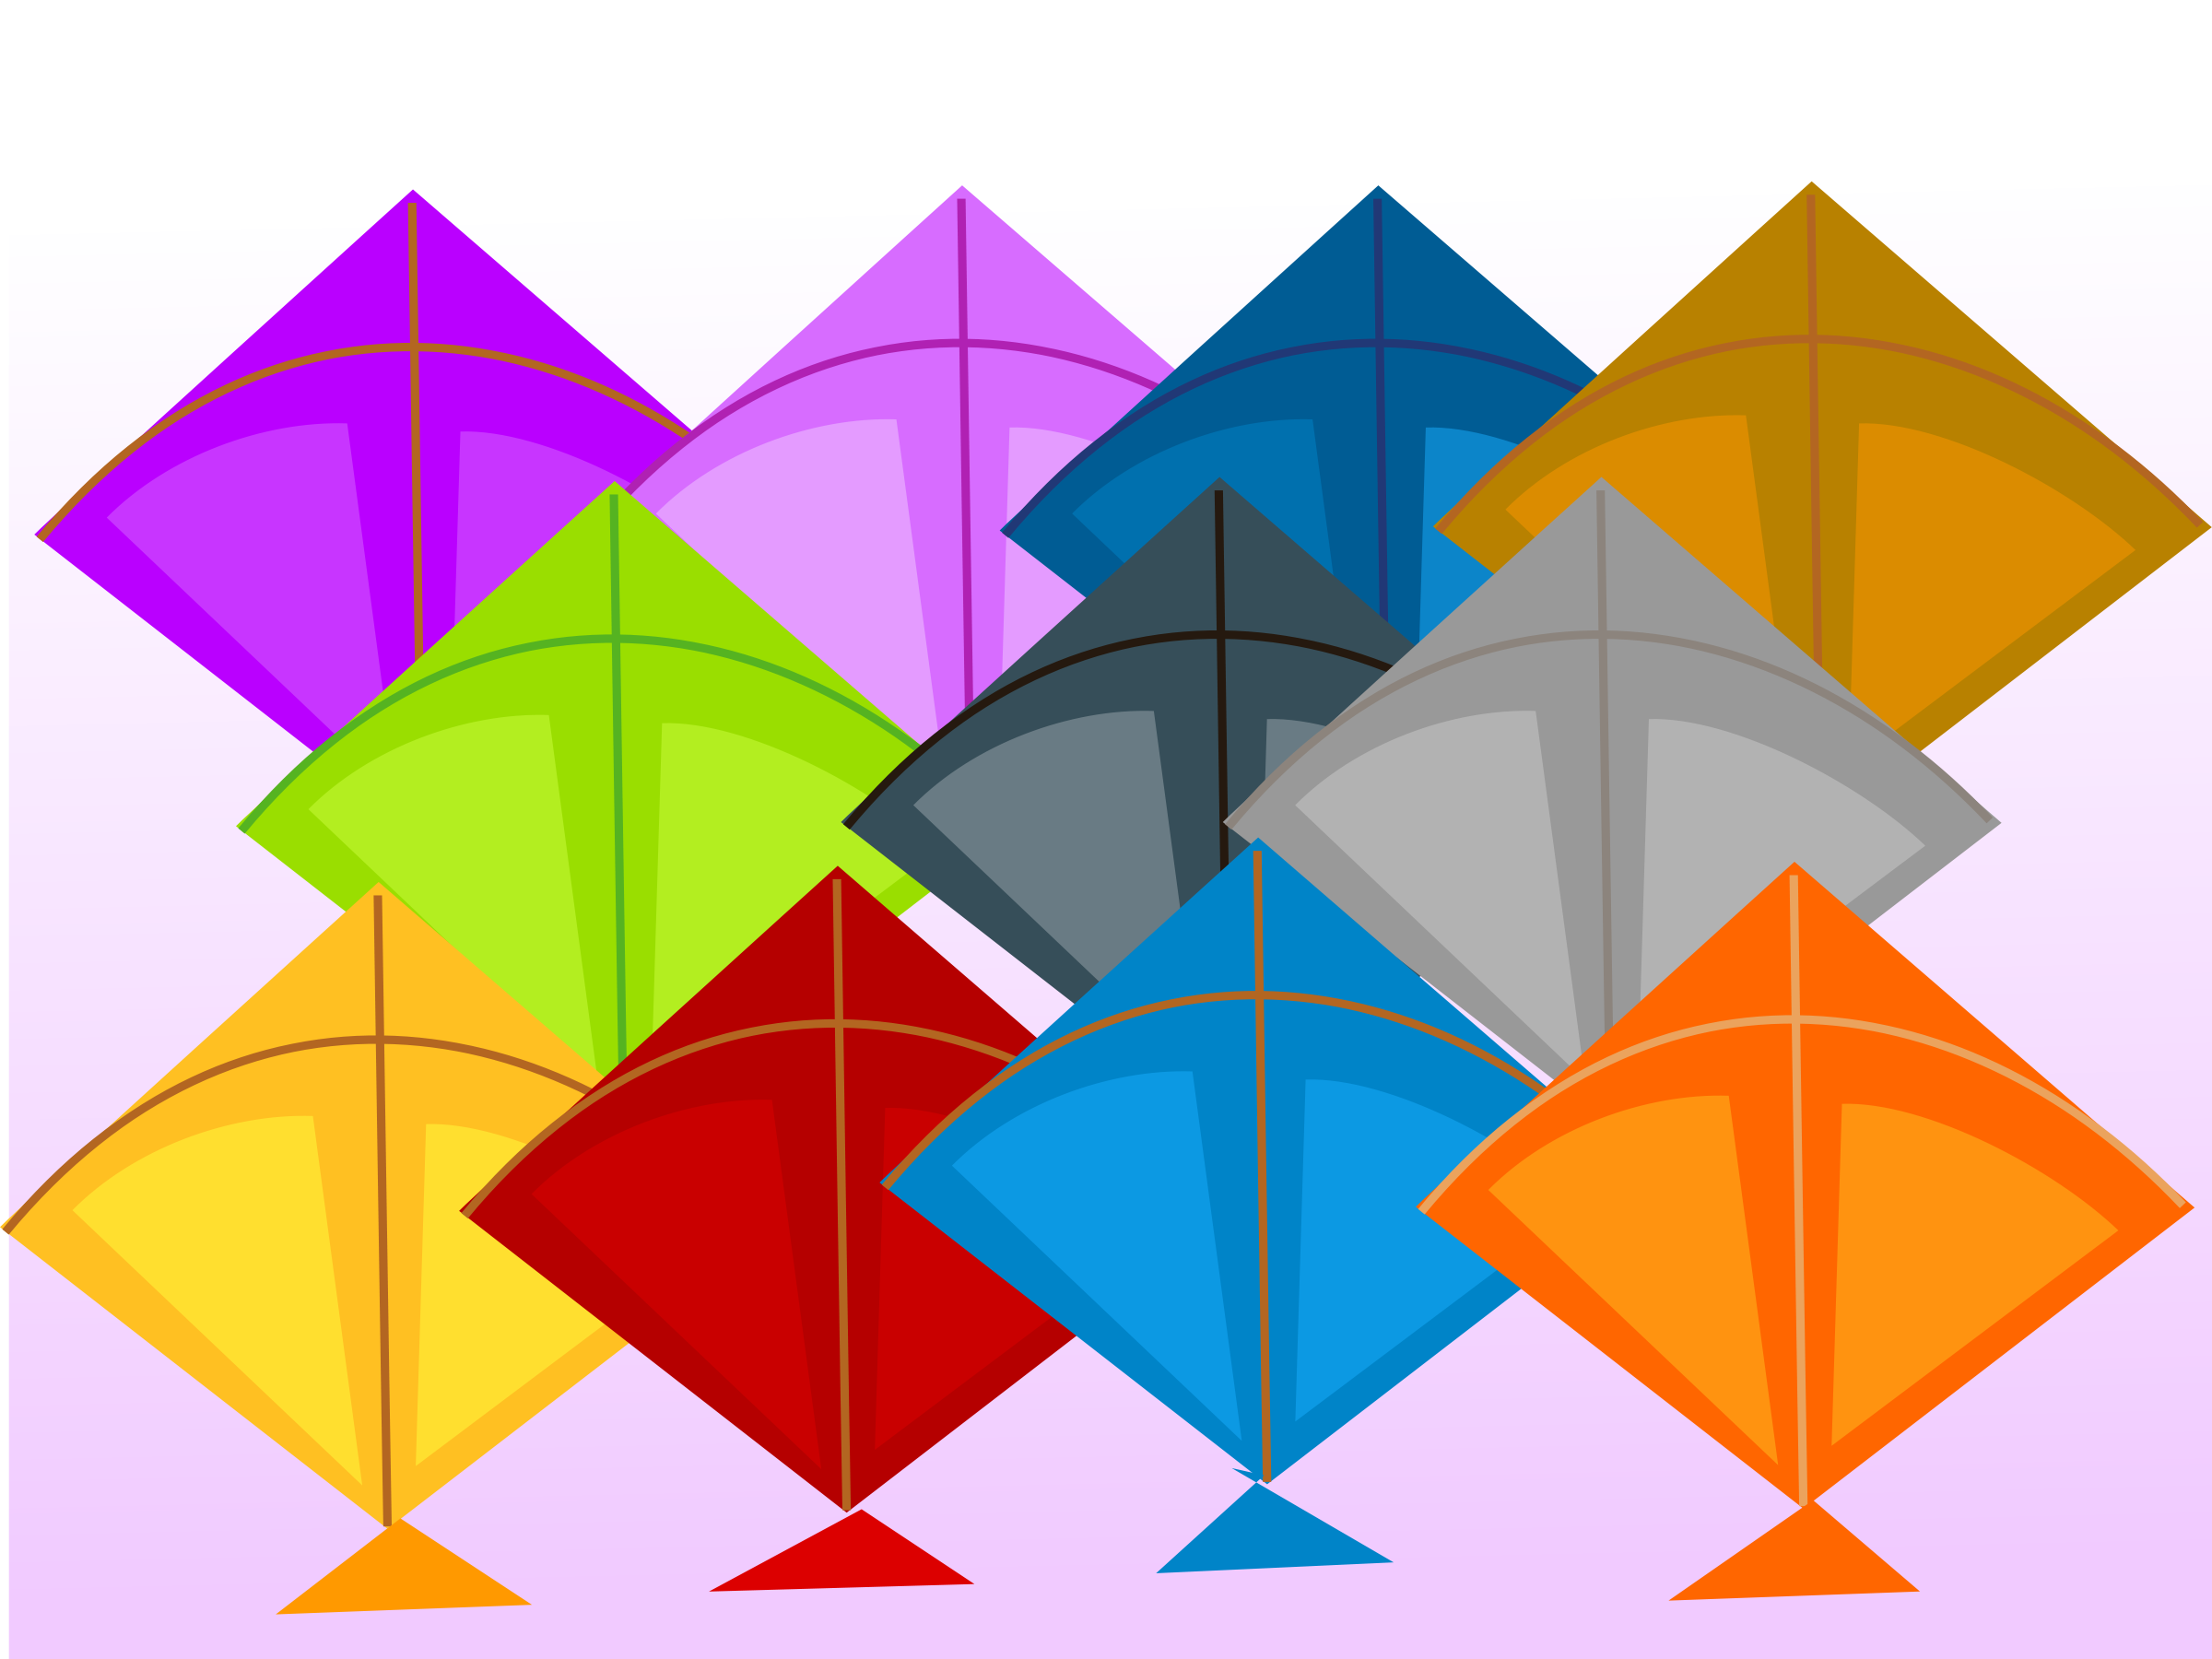 clipart free kite - photo #32